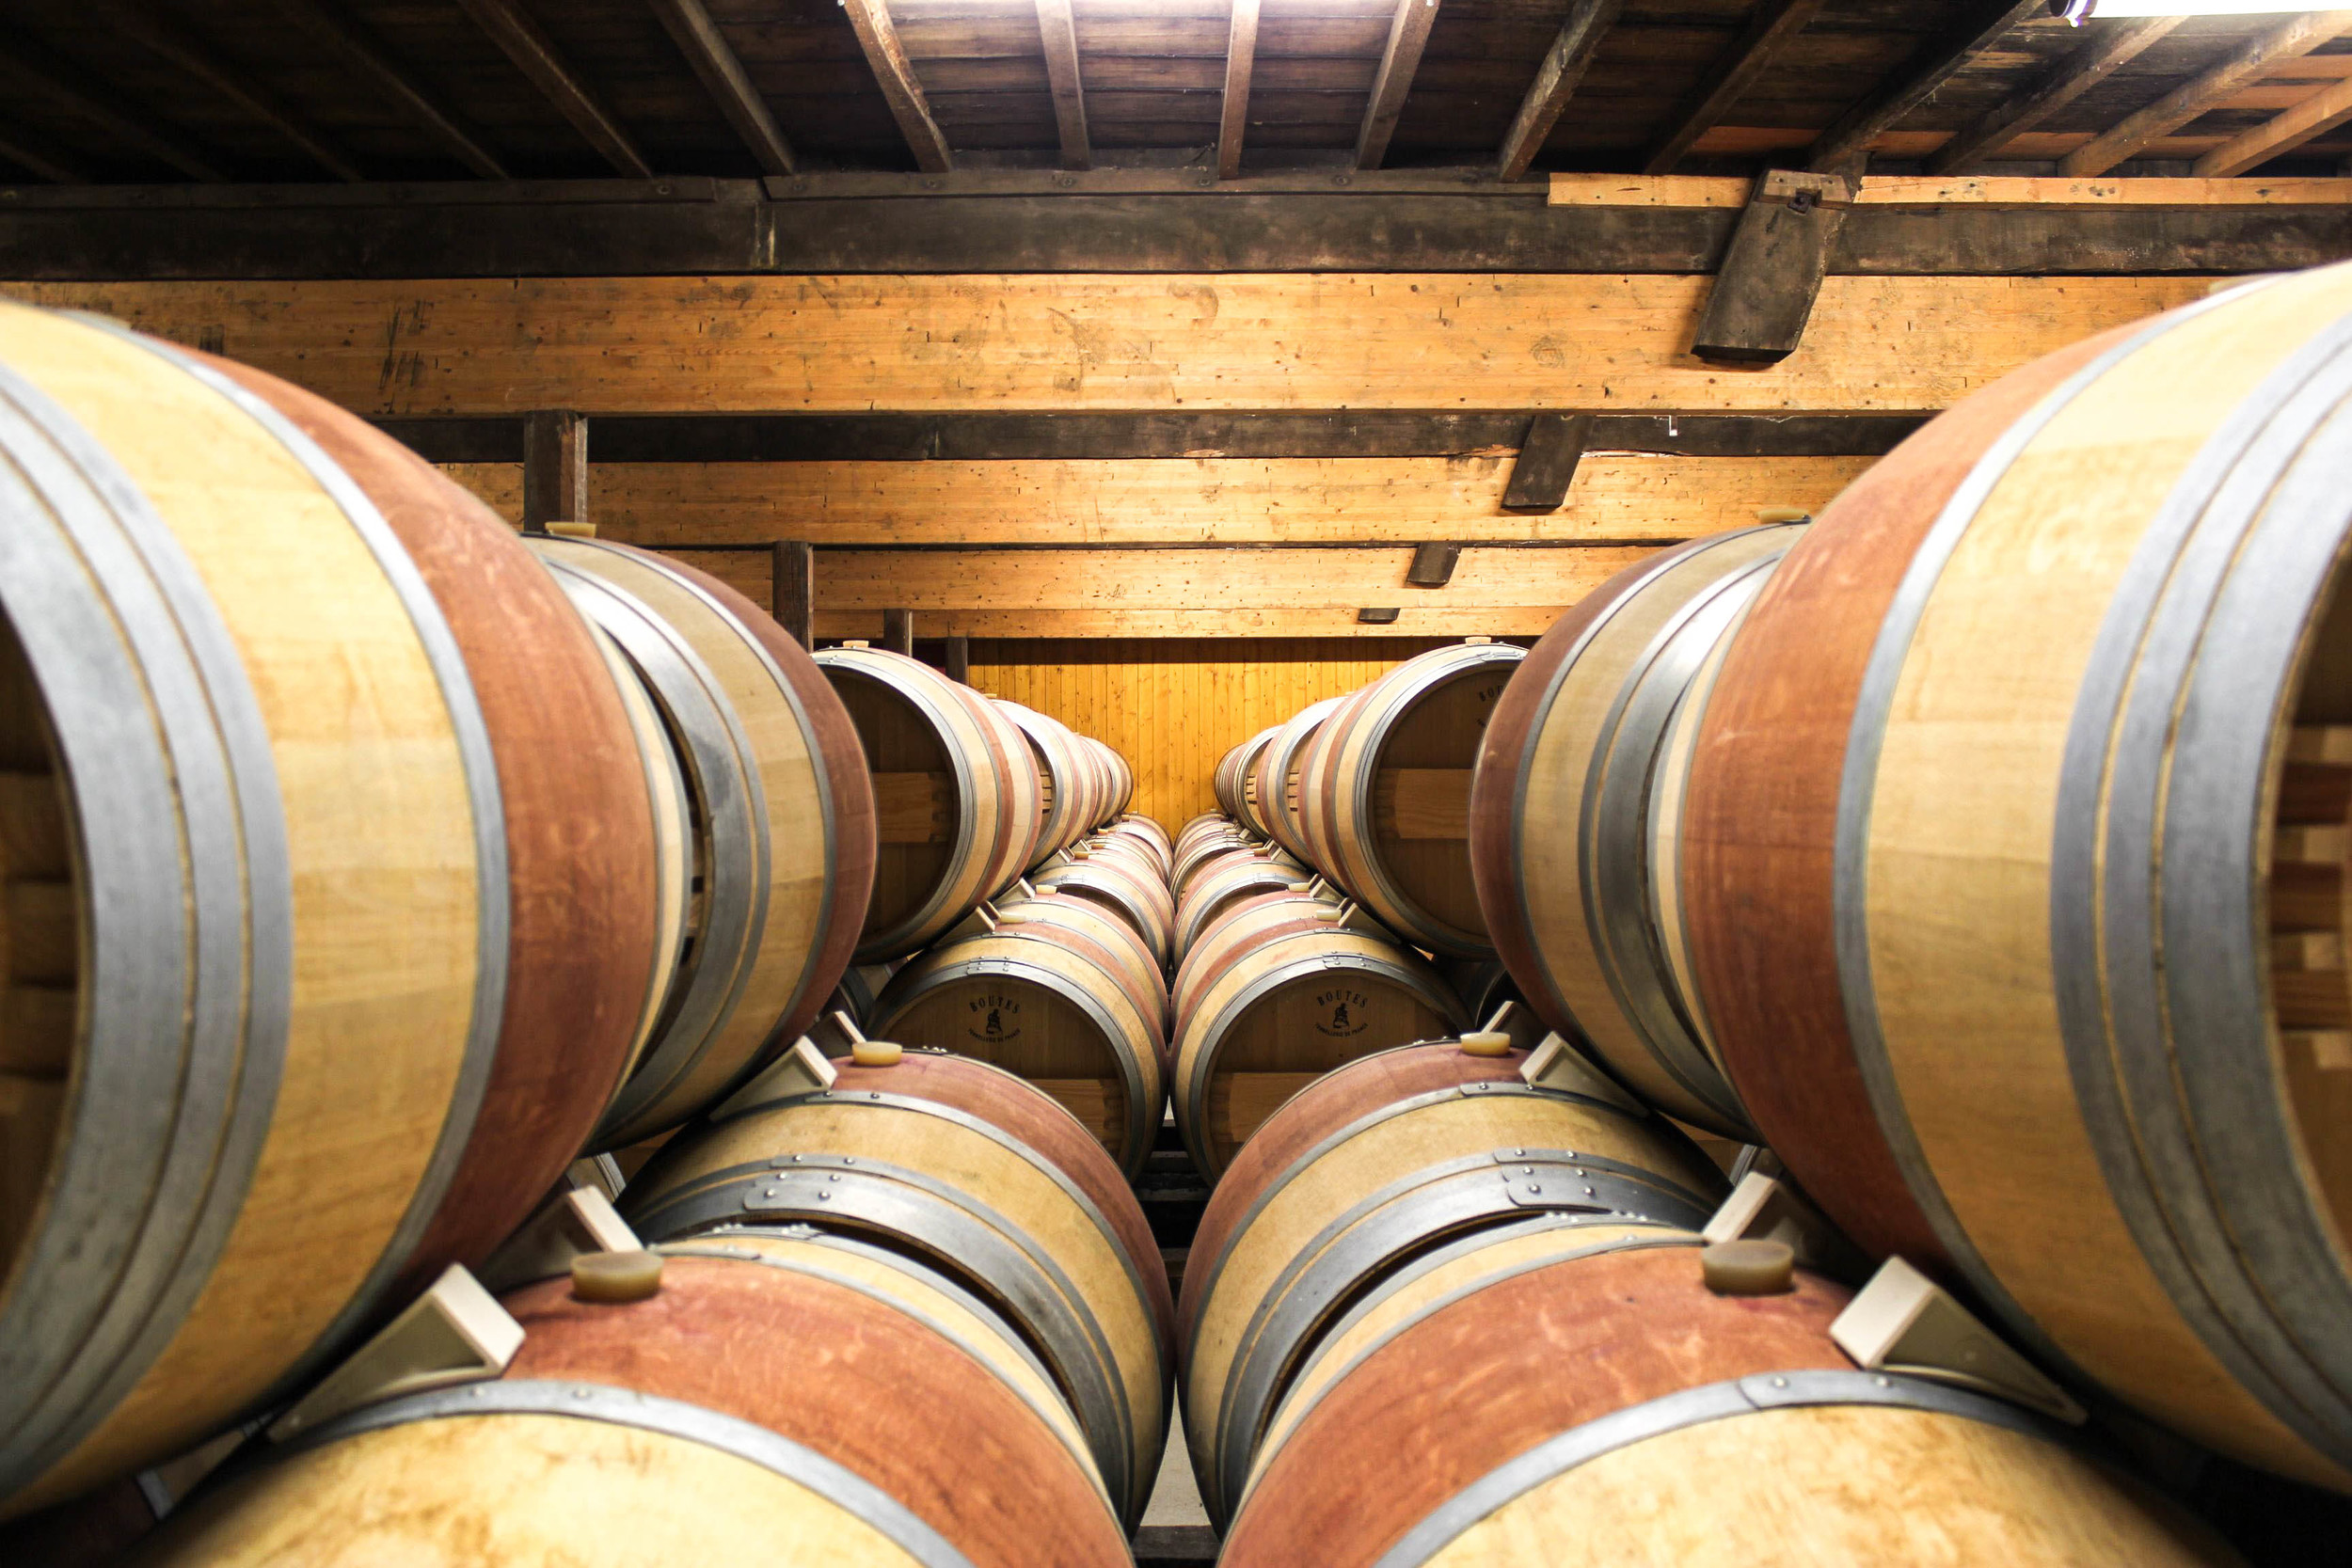 Oak Barrels for aging